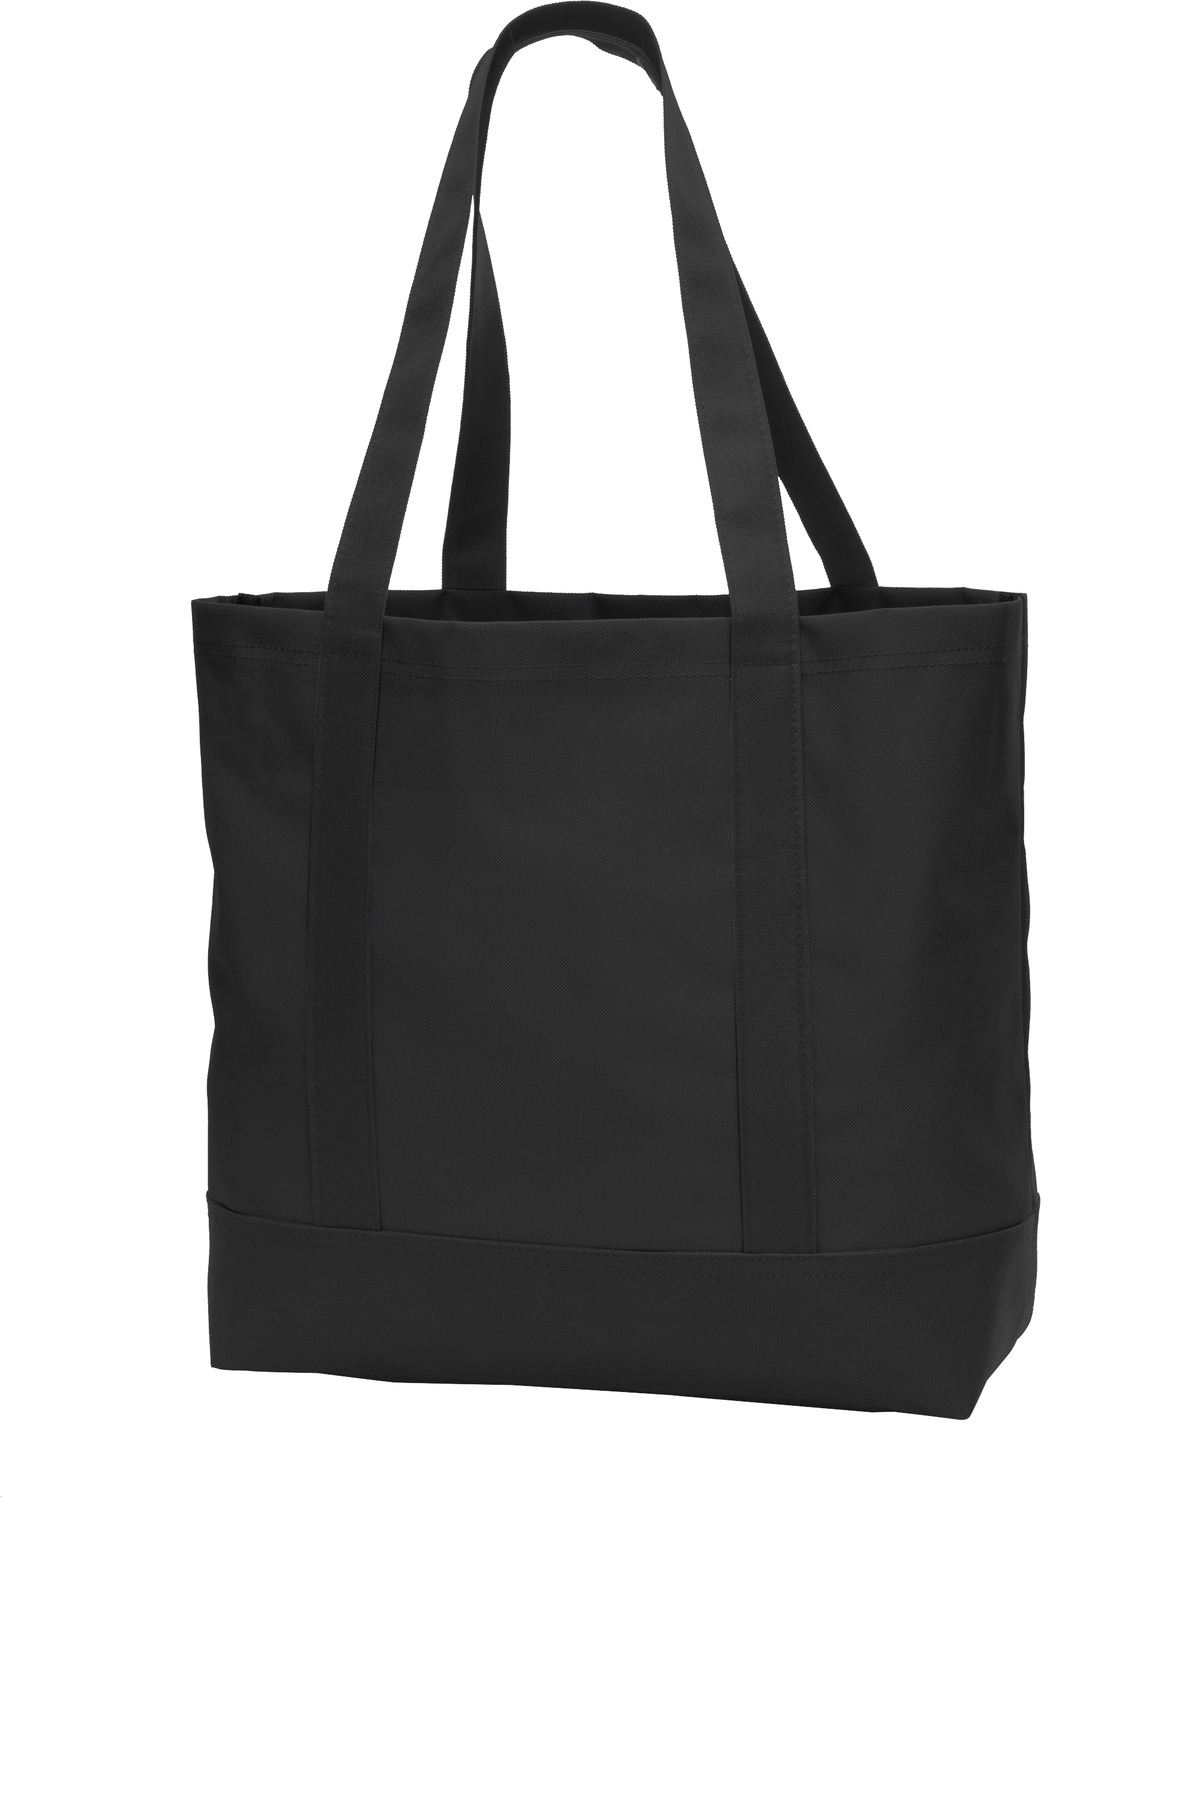 Port Authority  BG406 - Day Tote